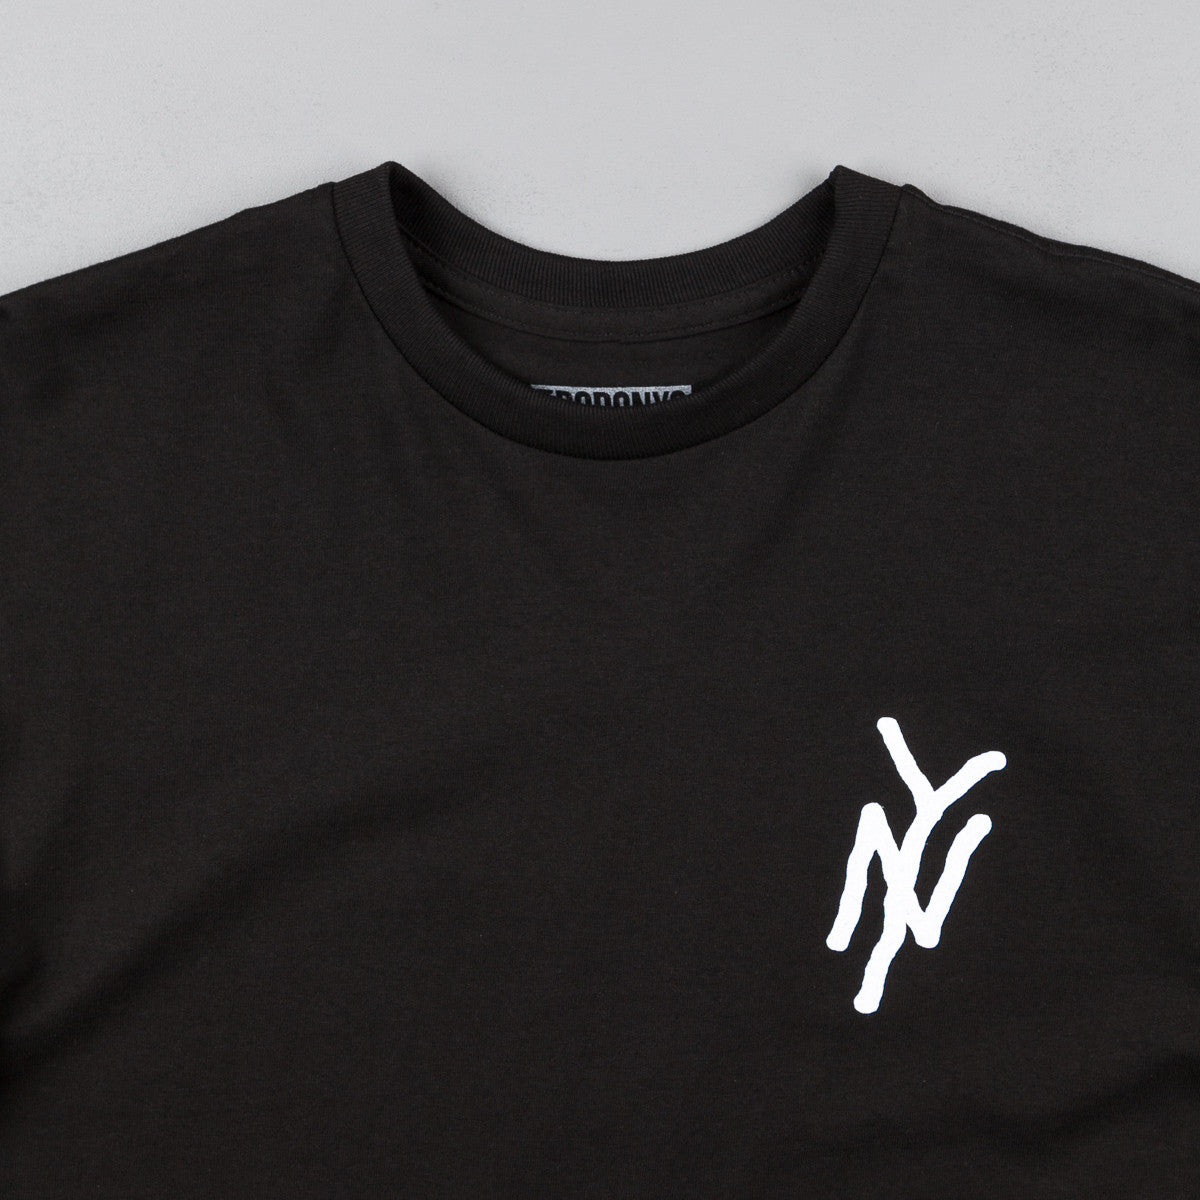 5boro NY Monogram T-Shirt - Black / White